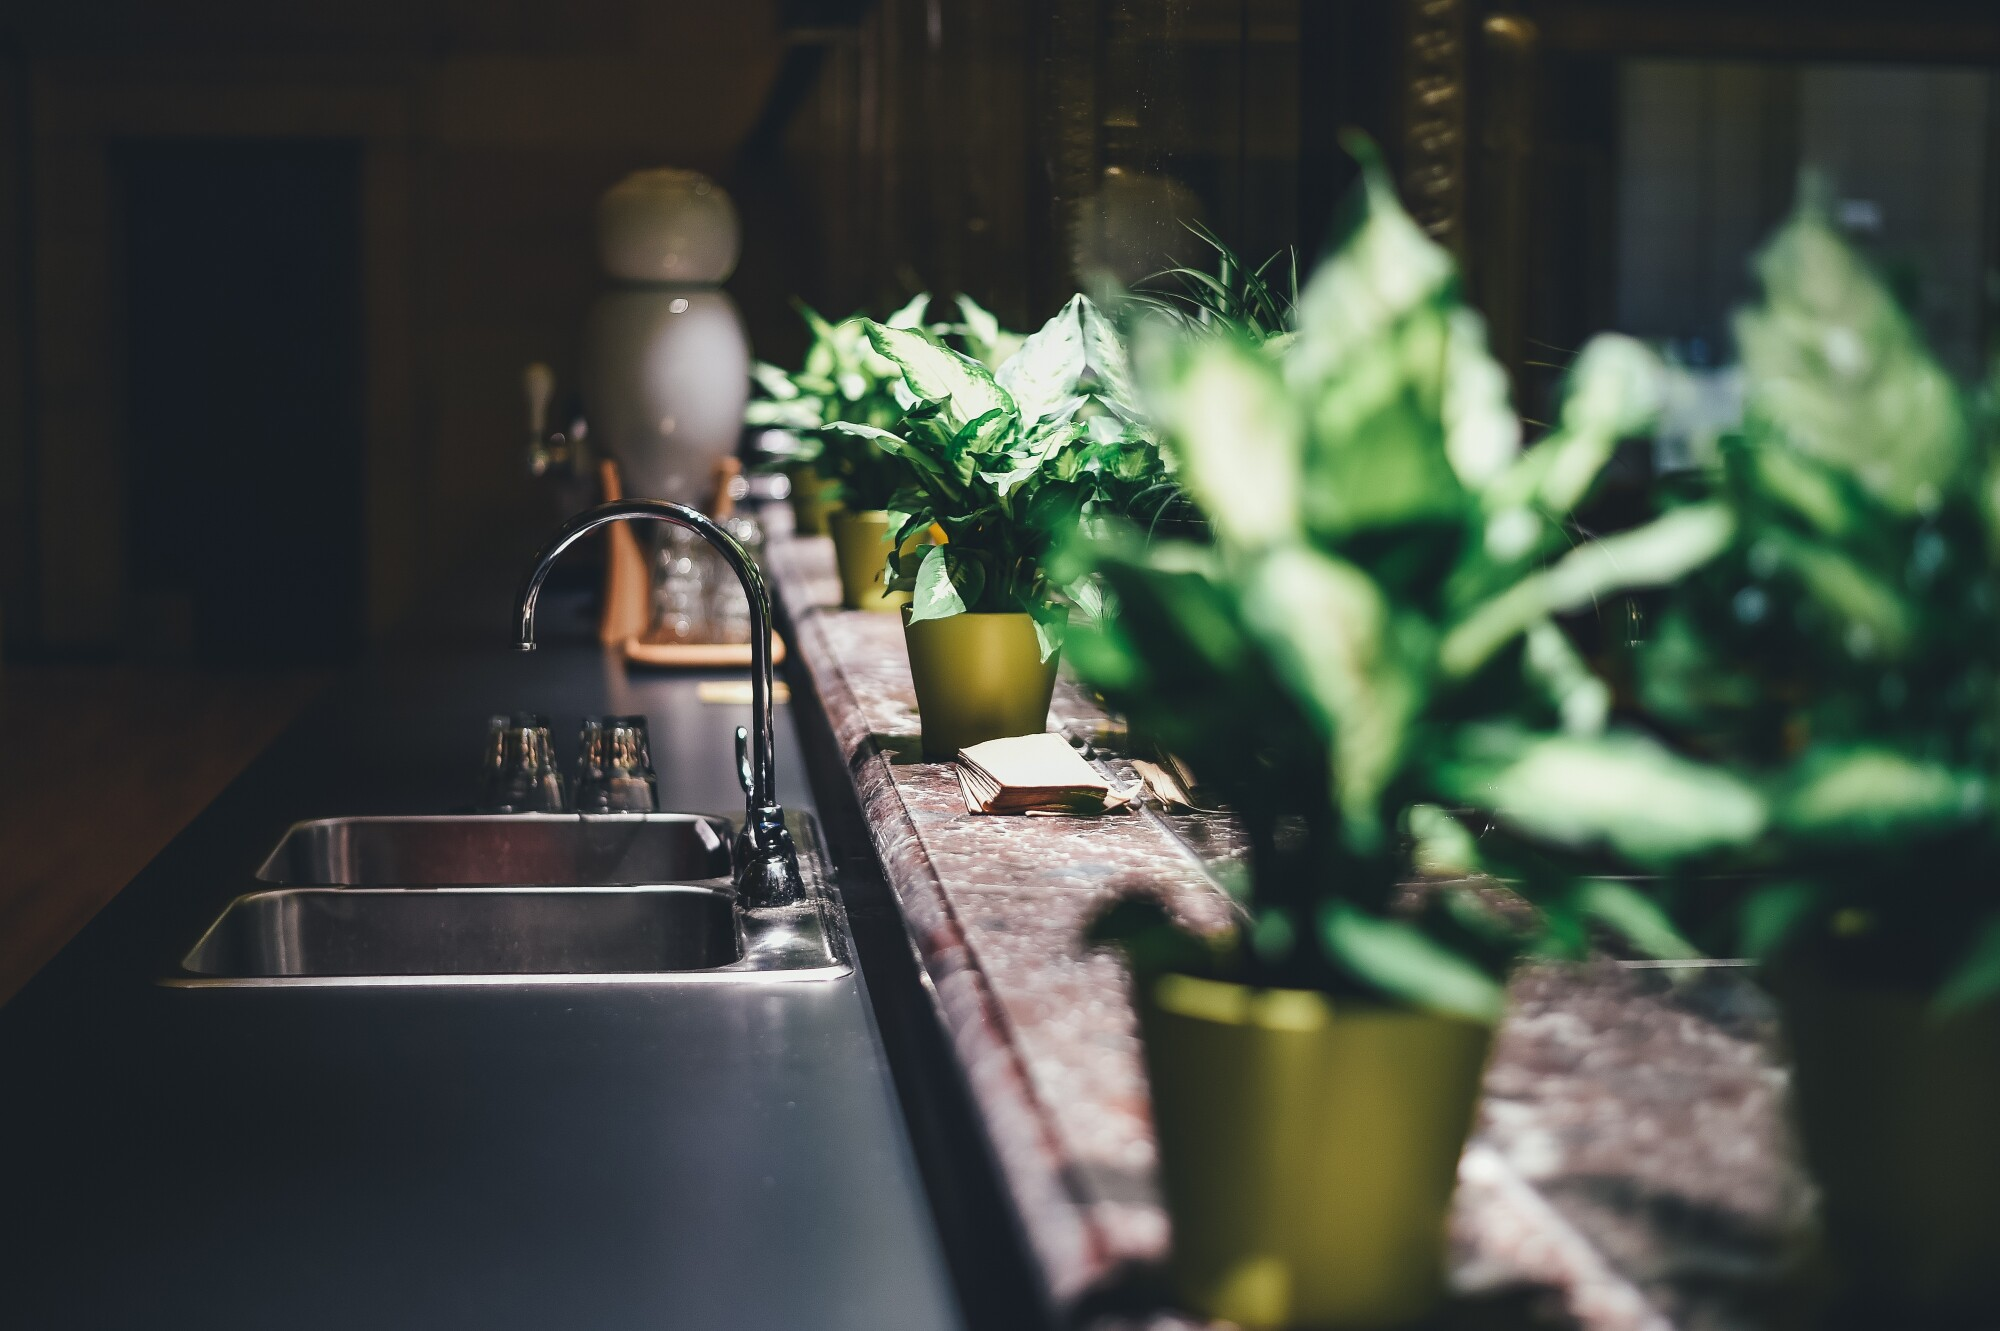 Bringing a little green to your kitchen doesn't have to be hard! Put a few plants and add in some eco-friendly products and you're almost there!